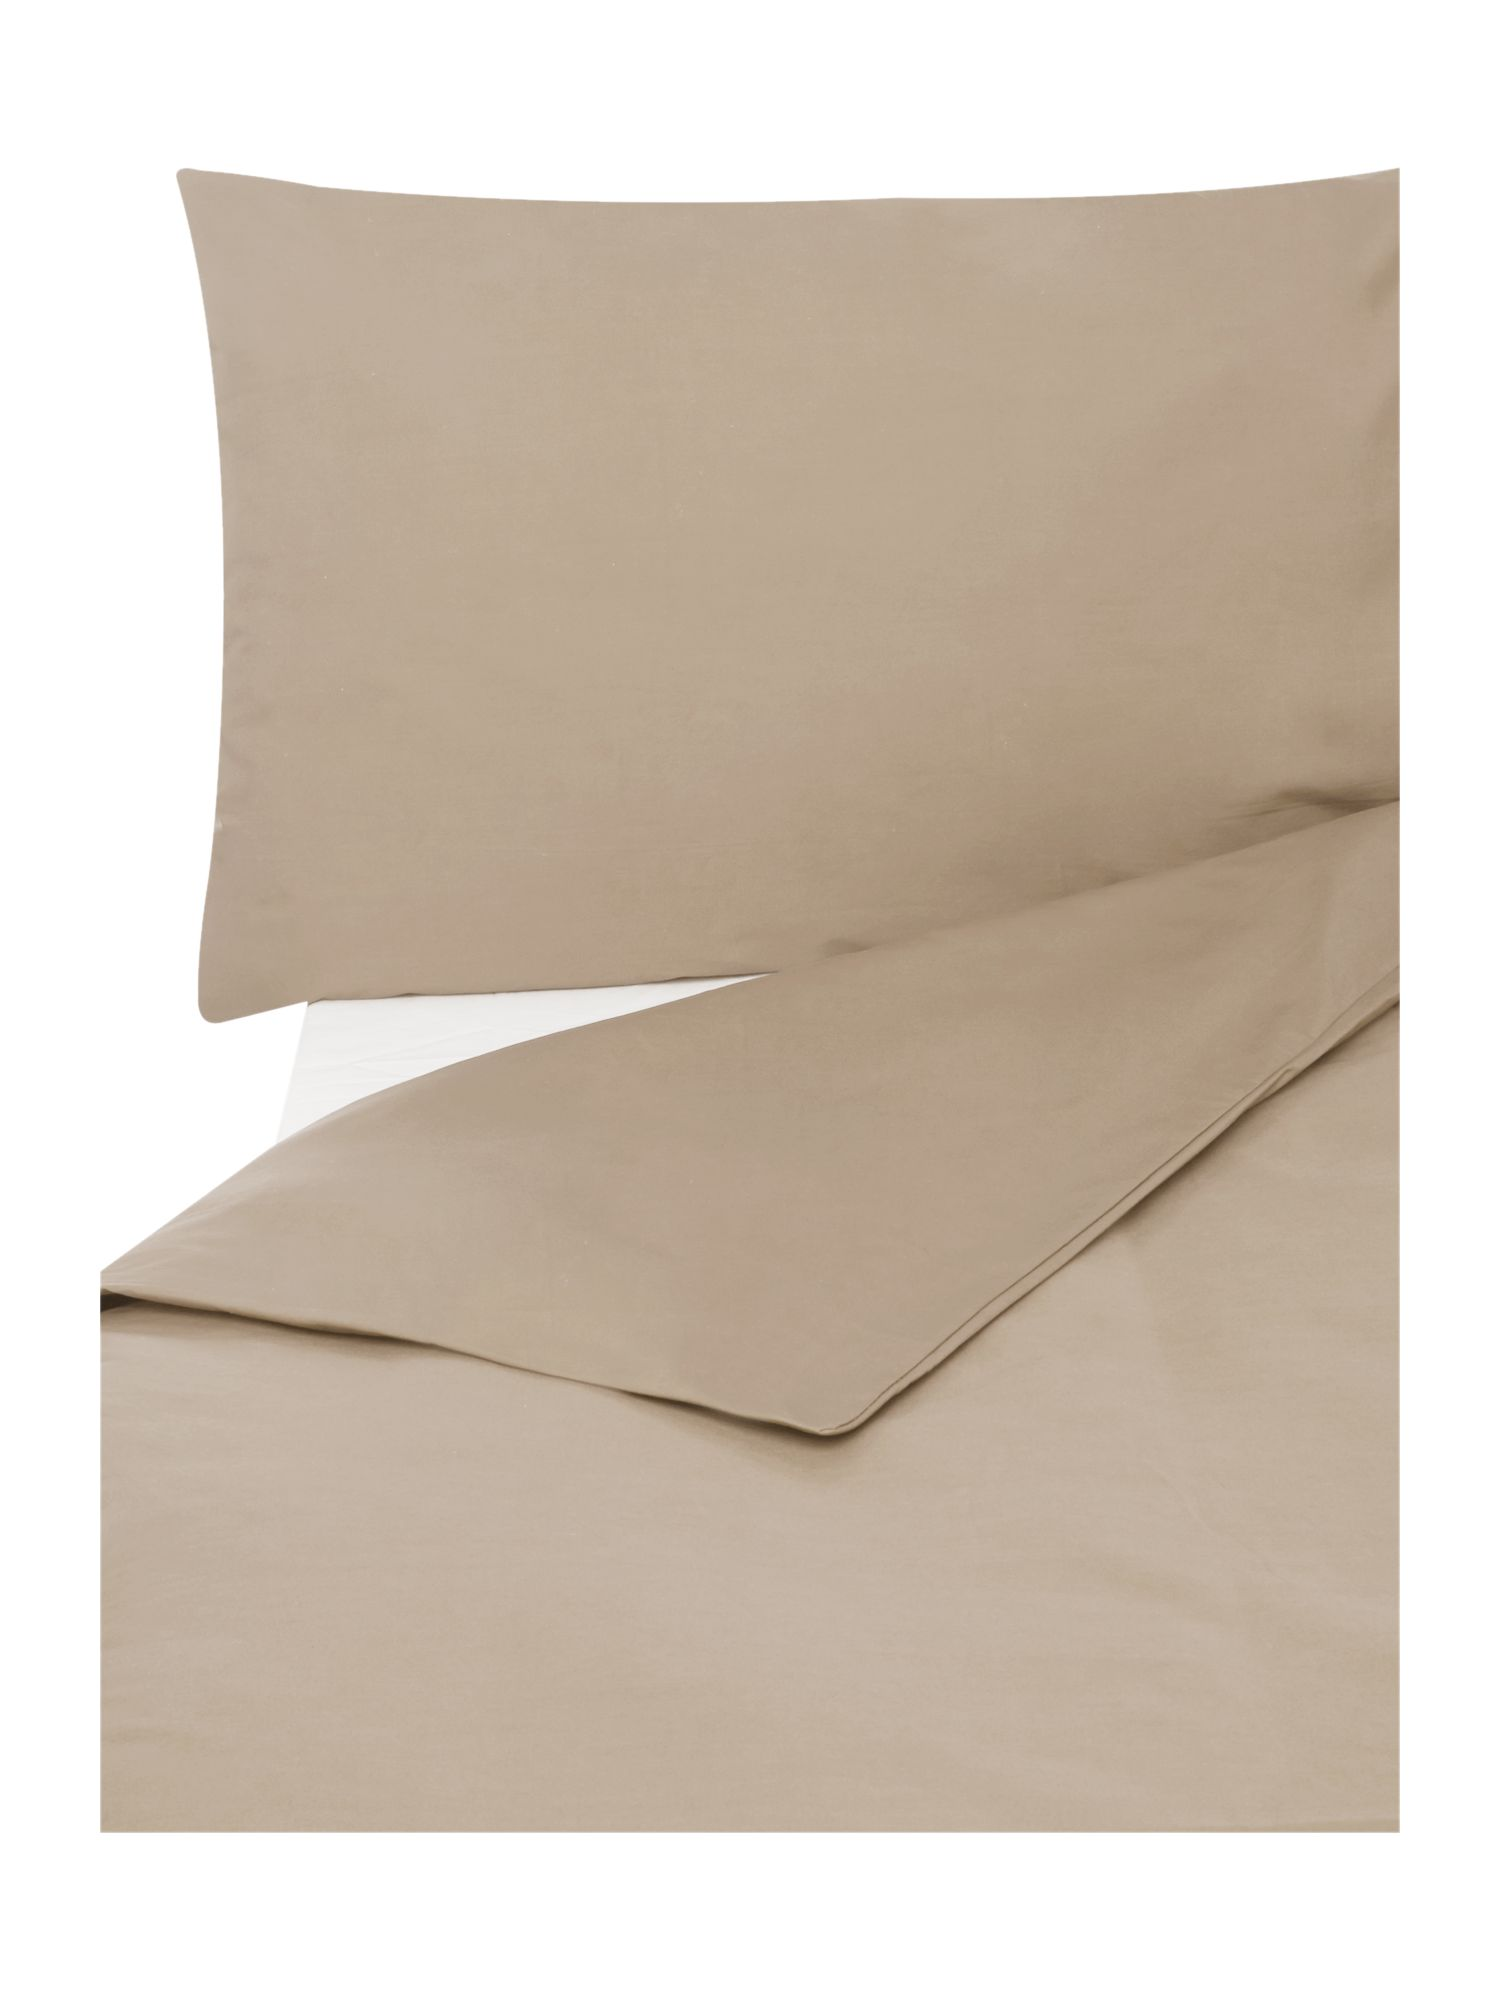 Egyptian cotton bedding range in stone